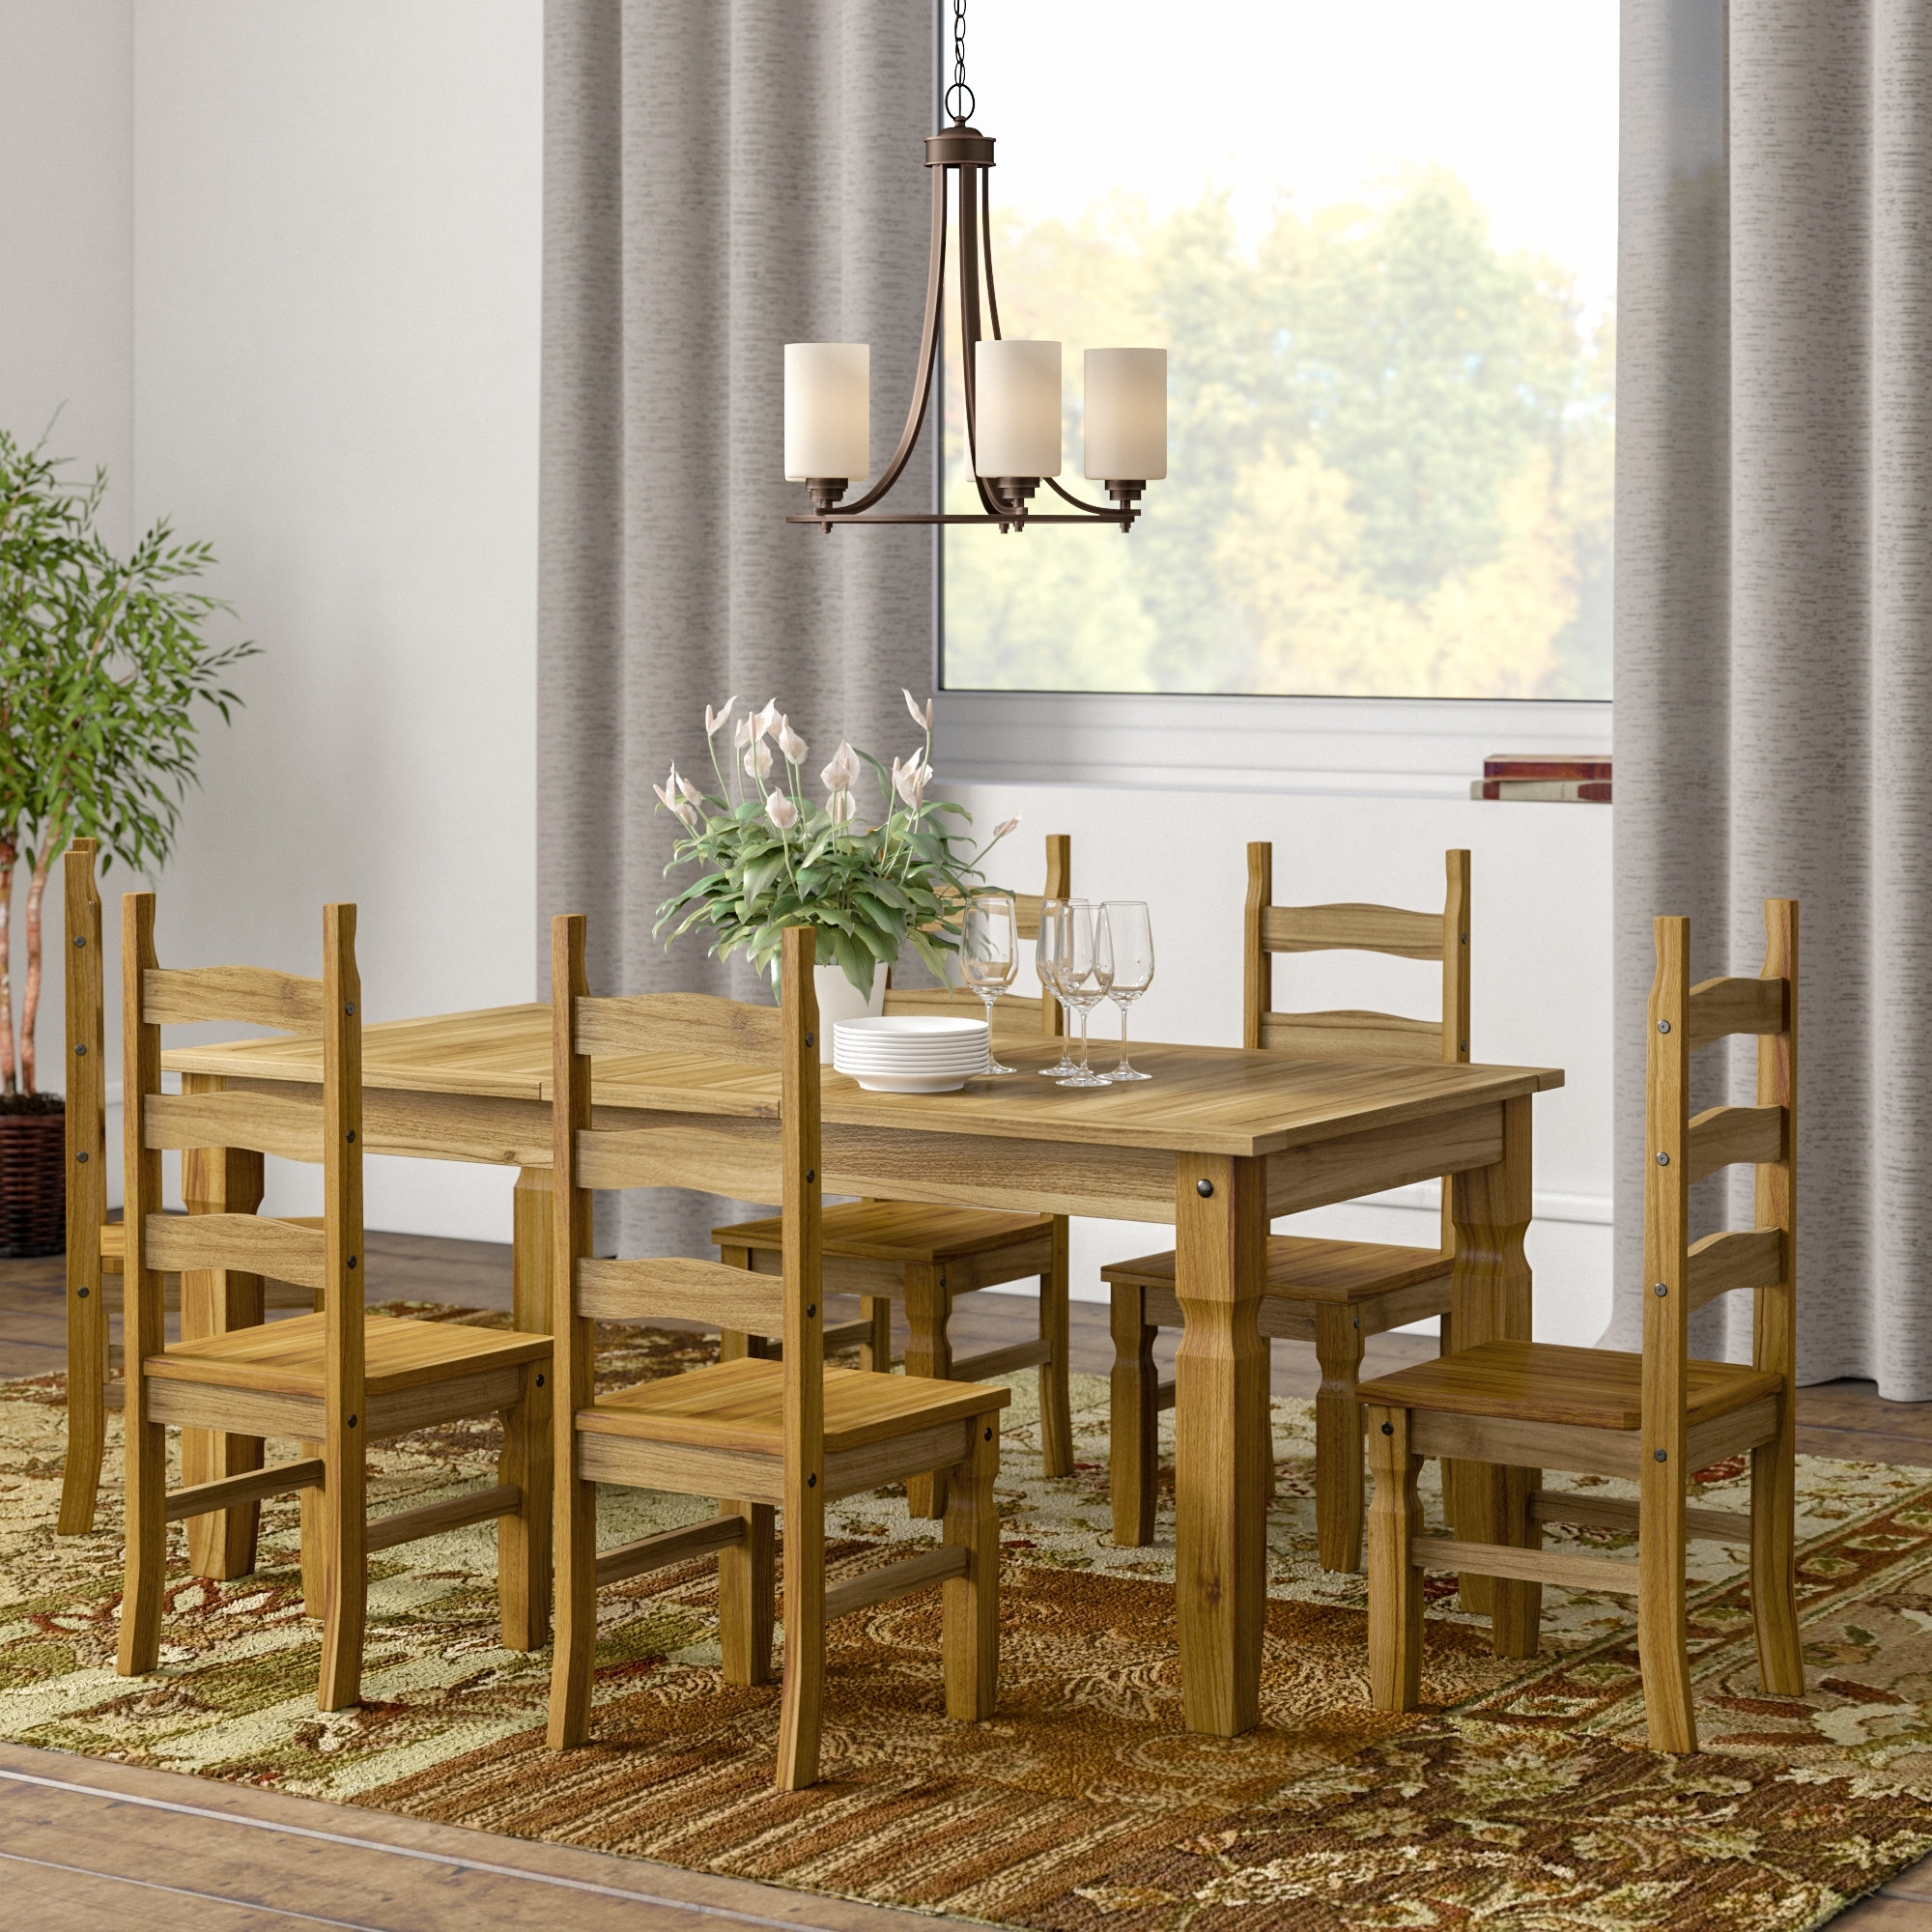 Extendable Dining Table And 6 Chairs Pertaining To Well Known Home & Haus Classic Corona Extendable Dining Set With 6 Chairs (View 8 of 25)